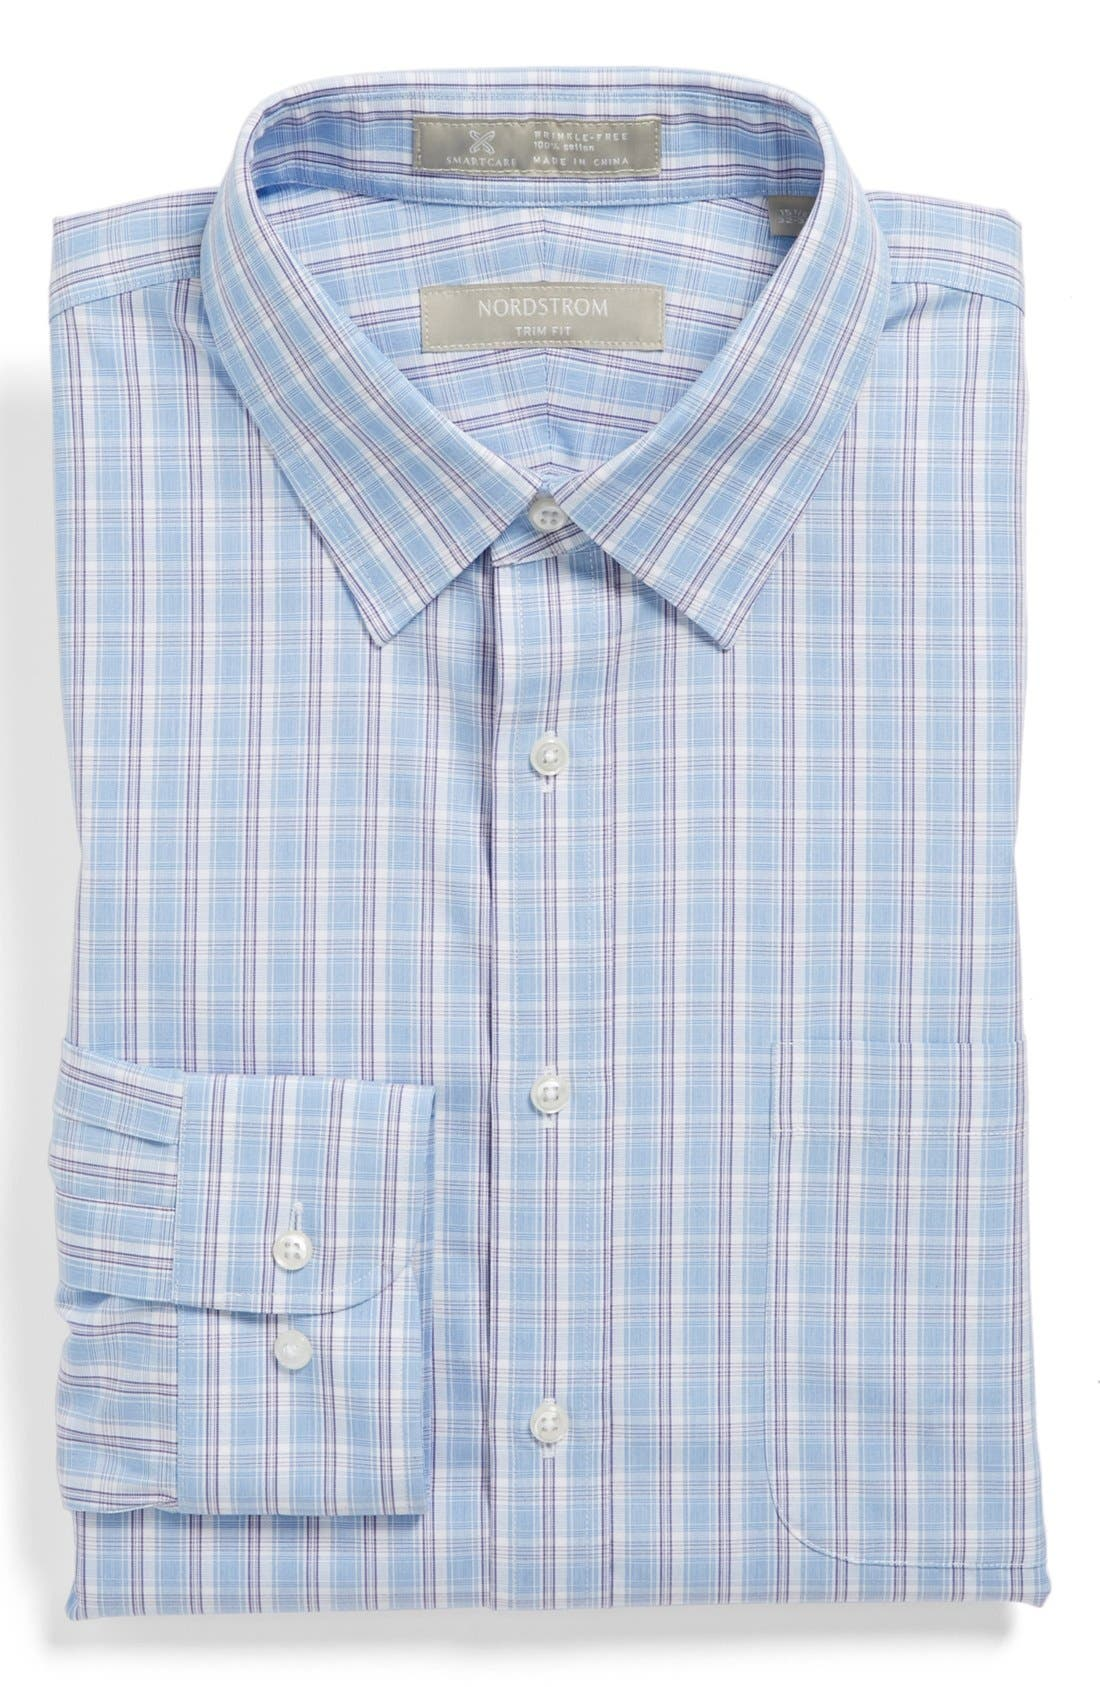 Main Image - Nordstrom Smartcare™ Wrinkle Free Trim Fit Dress Shirt